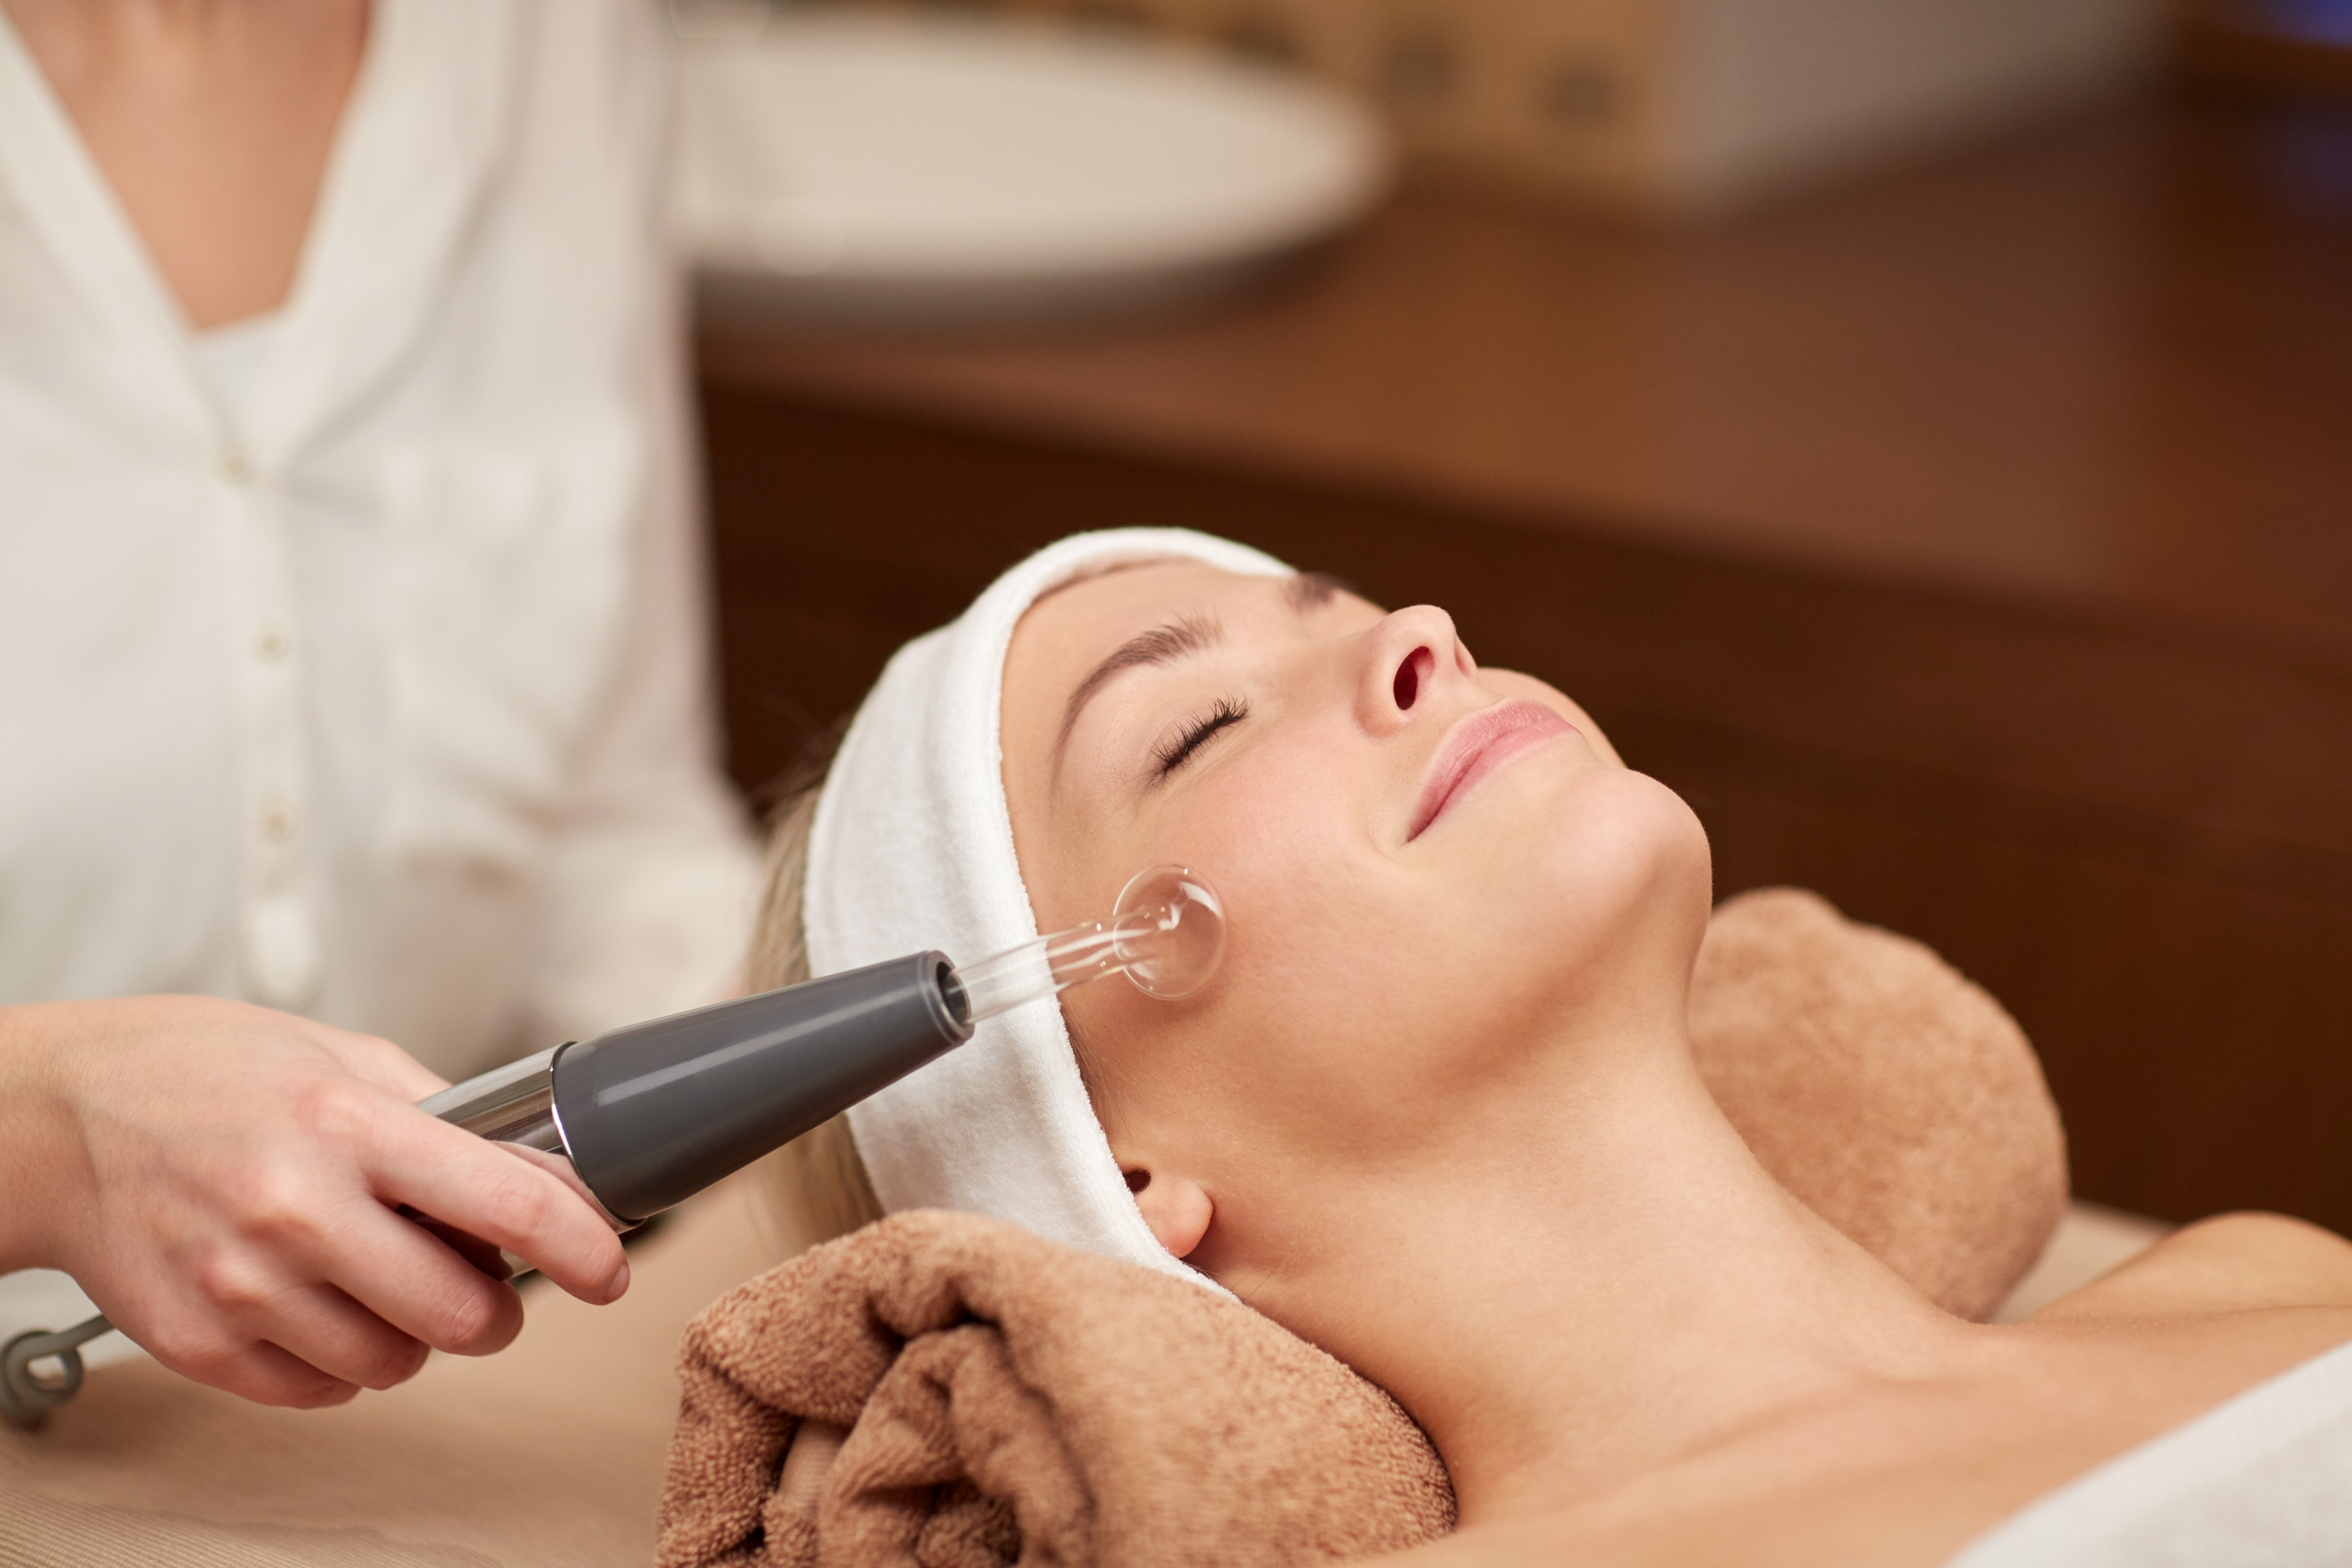 Electrical Facials – The Future of Wrinkle Free Skin?